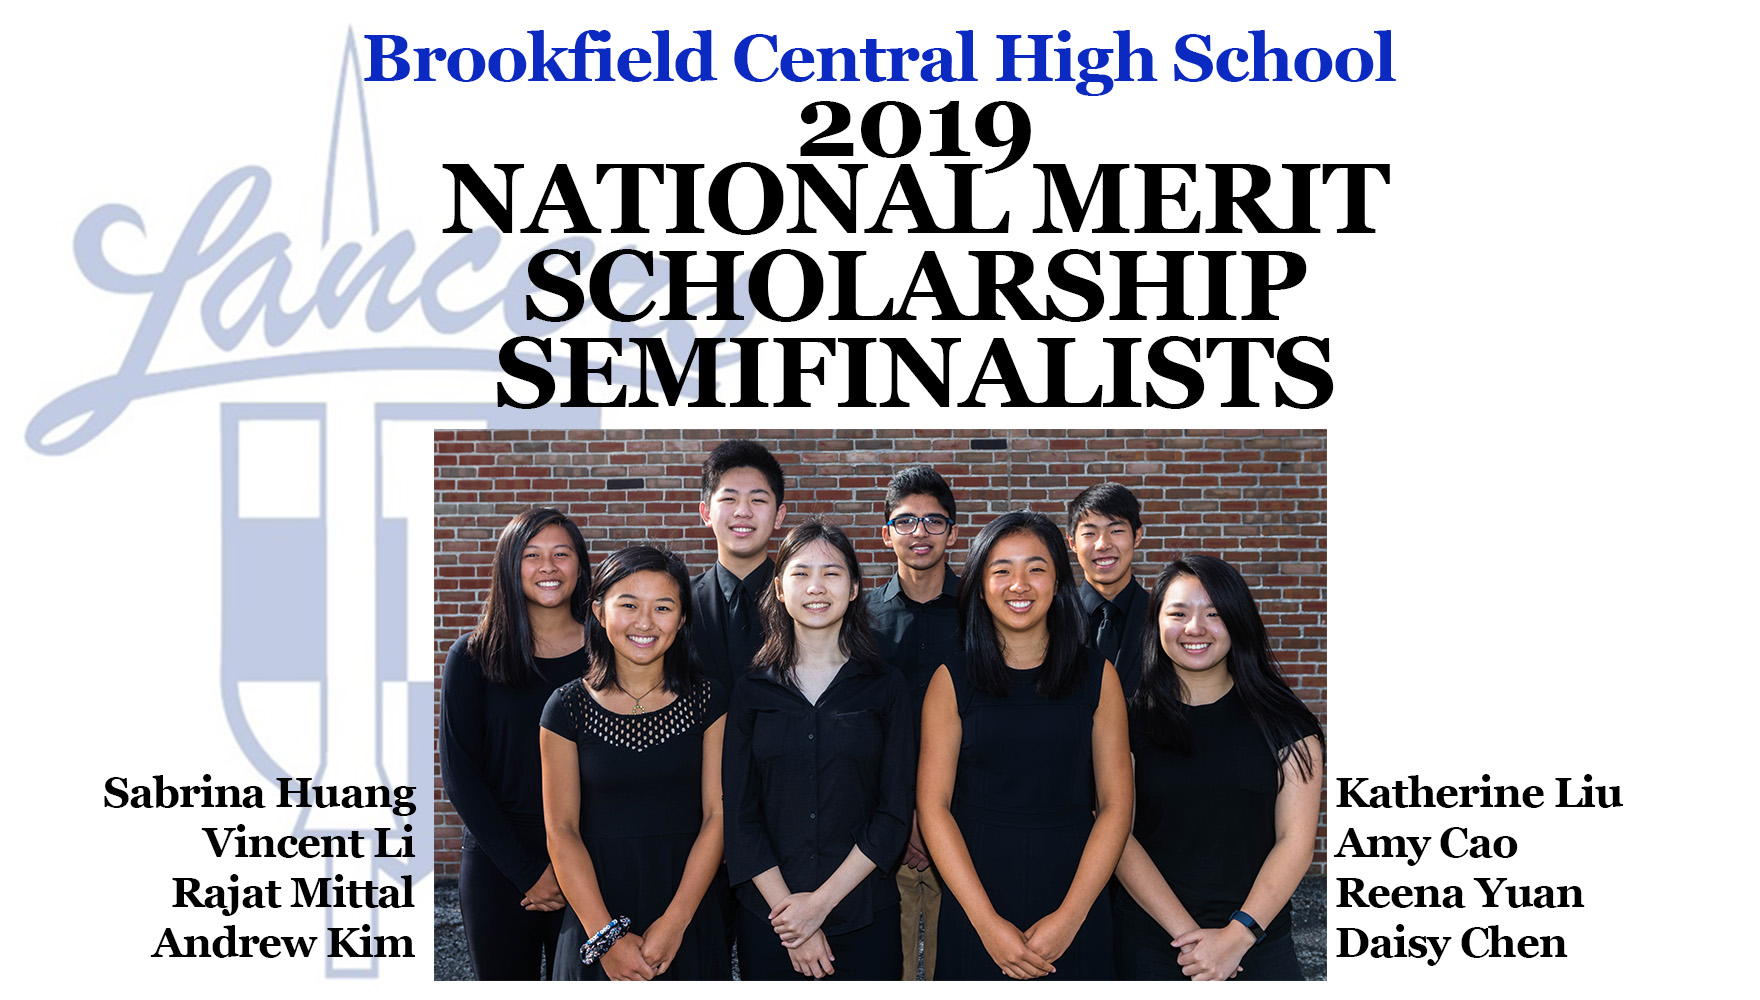 BCHS 2019 National Merit Scholarship Semifinalists